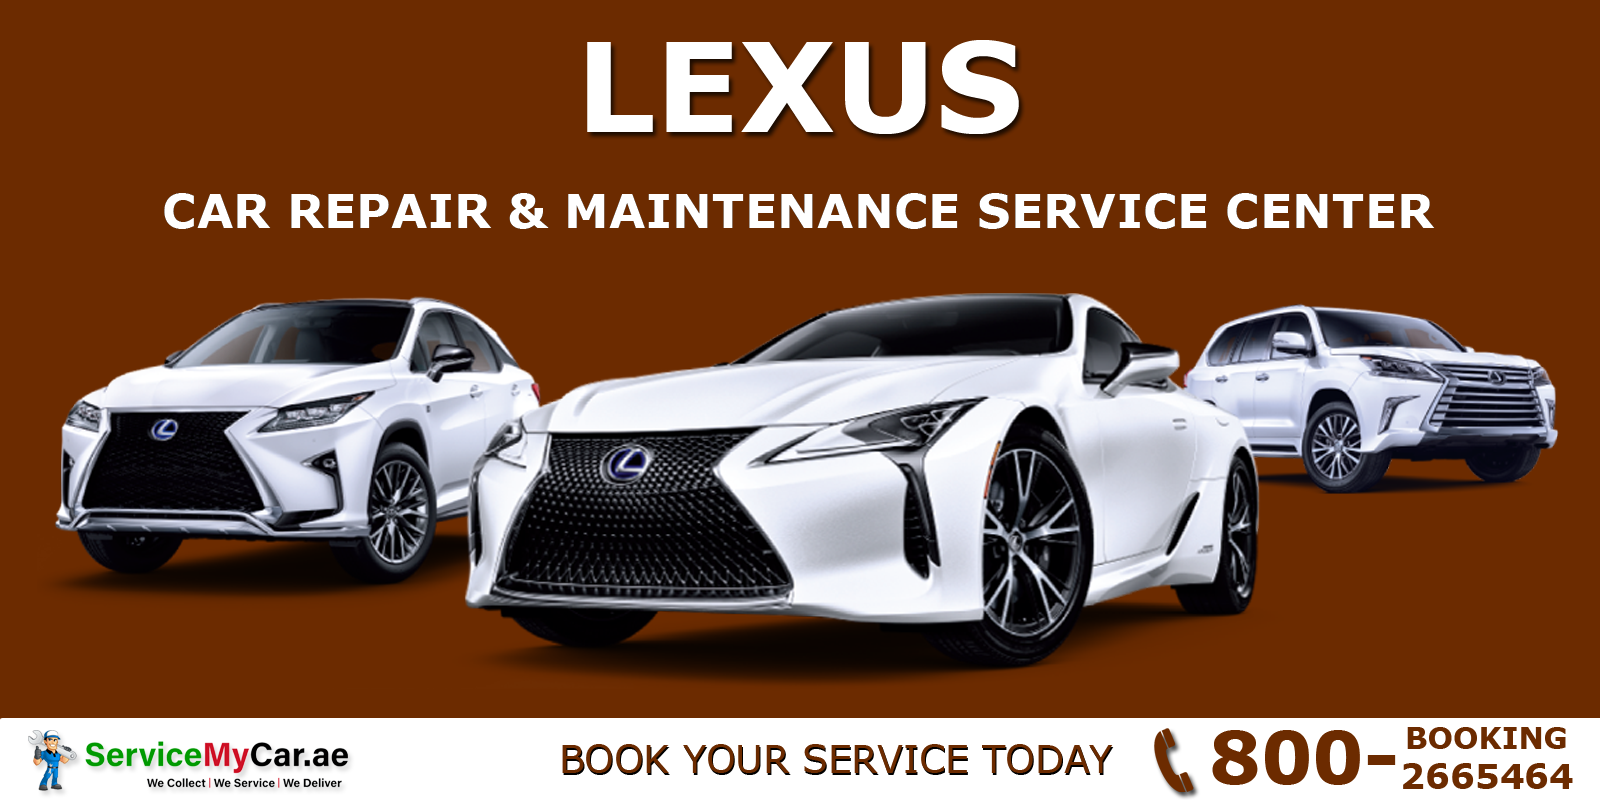 Get A Lexus Car Repair And Maintenance Service By The Uae S Most Trusted Car Service Center Called Servicem Lexus Cars Car Auto Service